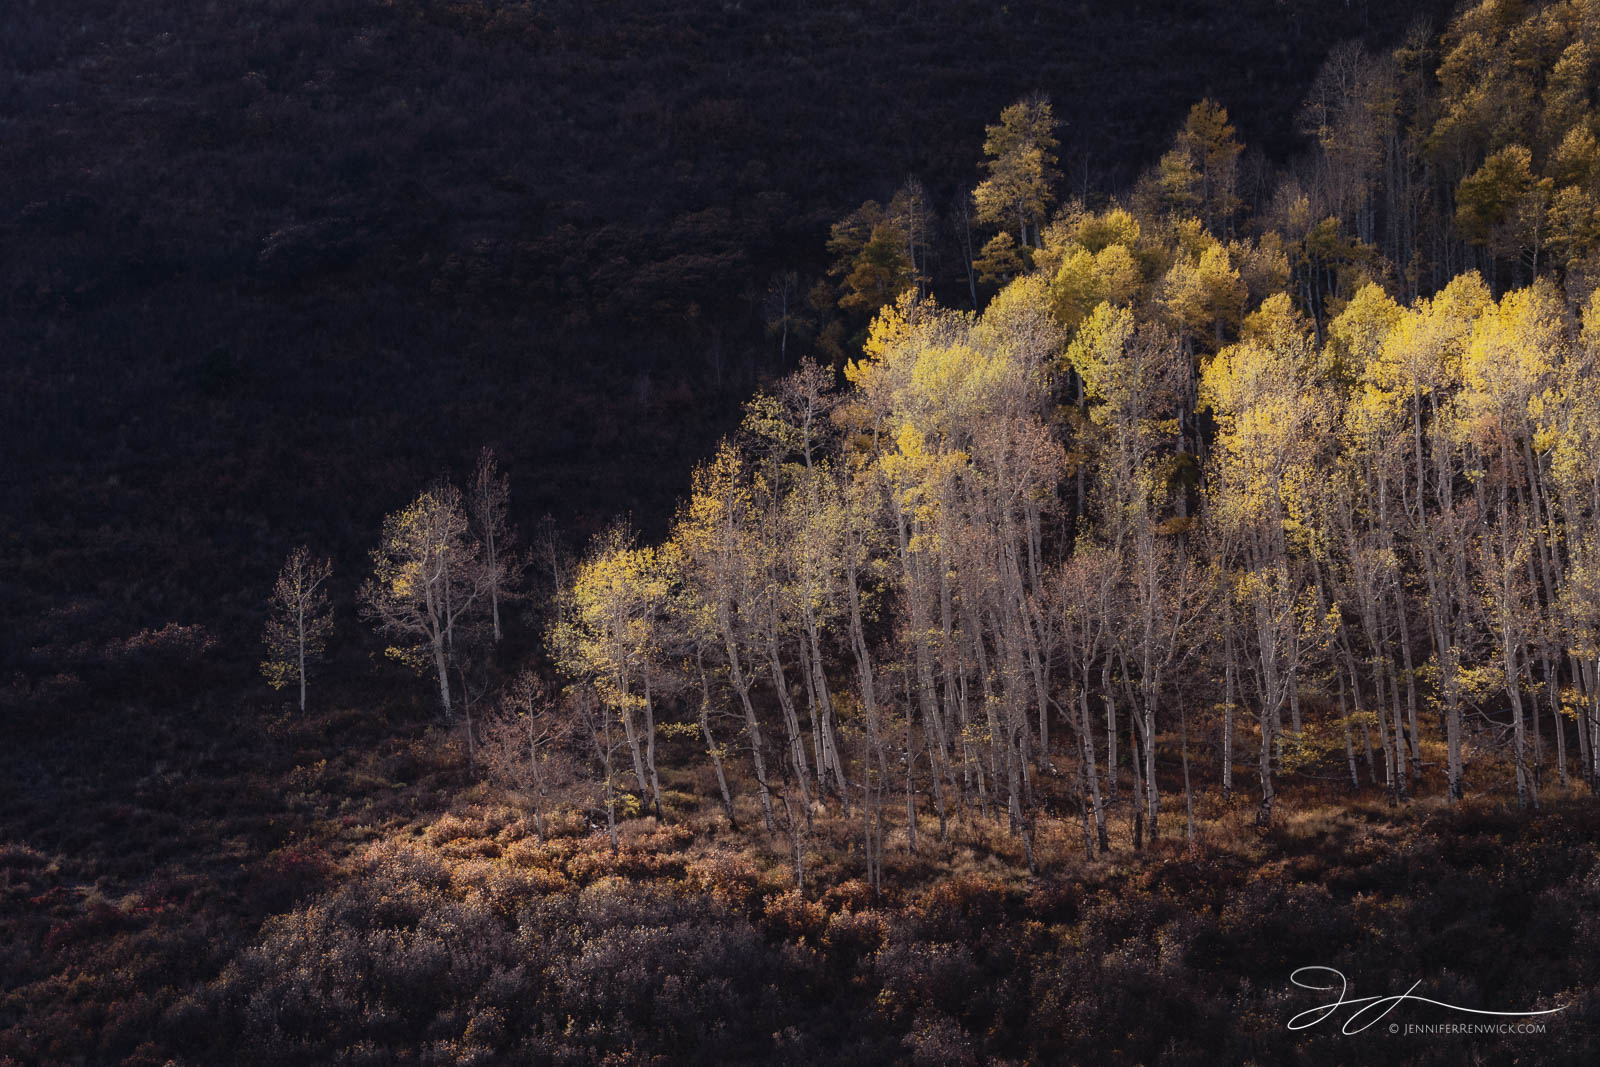 Colorado, San Juan Mountains, County Road 7, aspens, autumn, small scene, landscape, trees, sunset, Ridgway, forest, photo